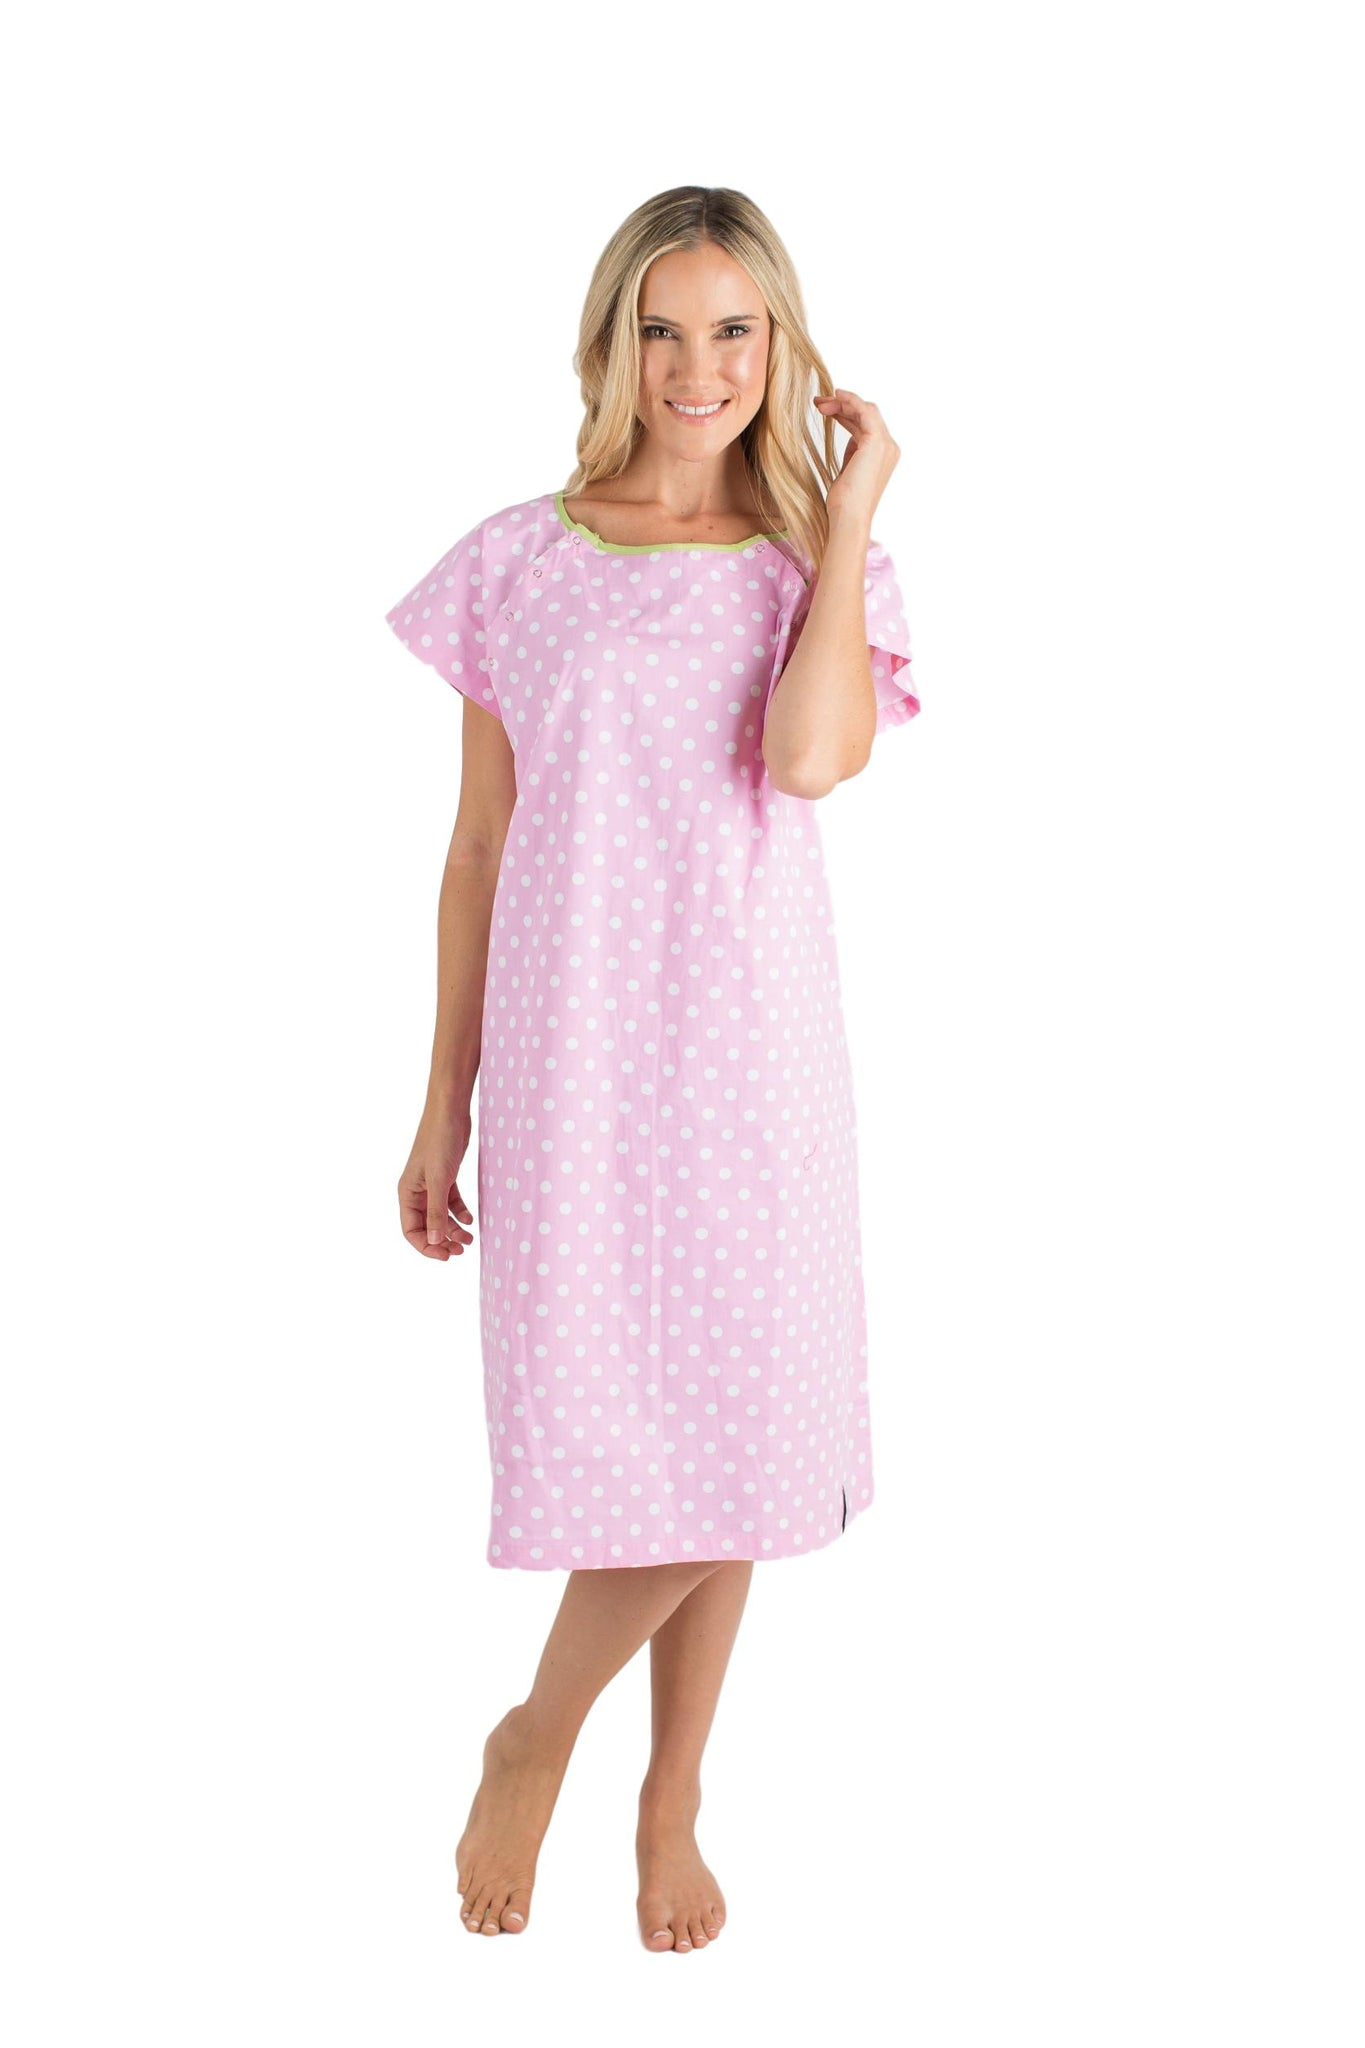 5449a888b4 ... Pillowcase Set · Molly Patient Hospital Gown Gownie   Pillowcase ...